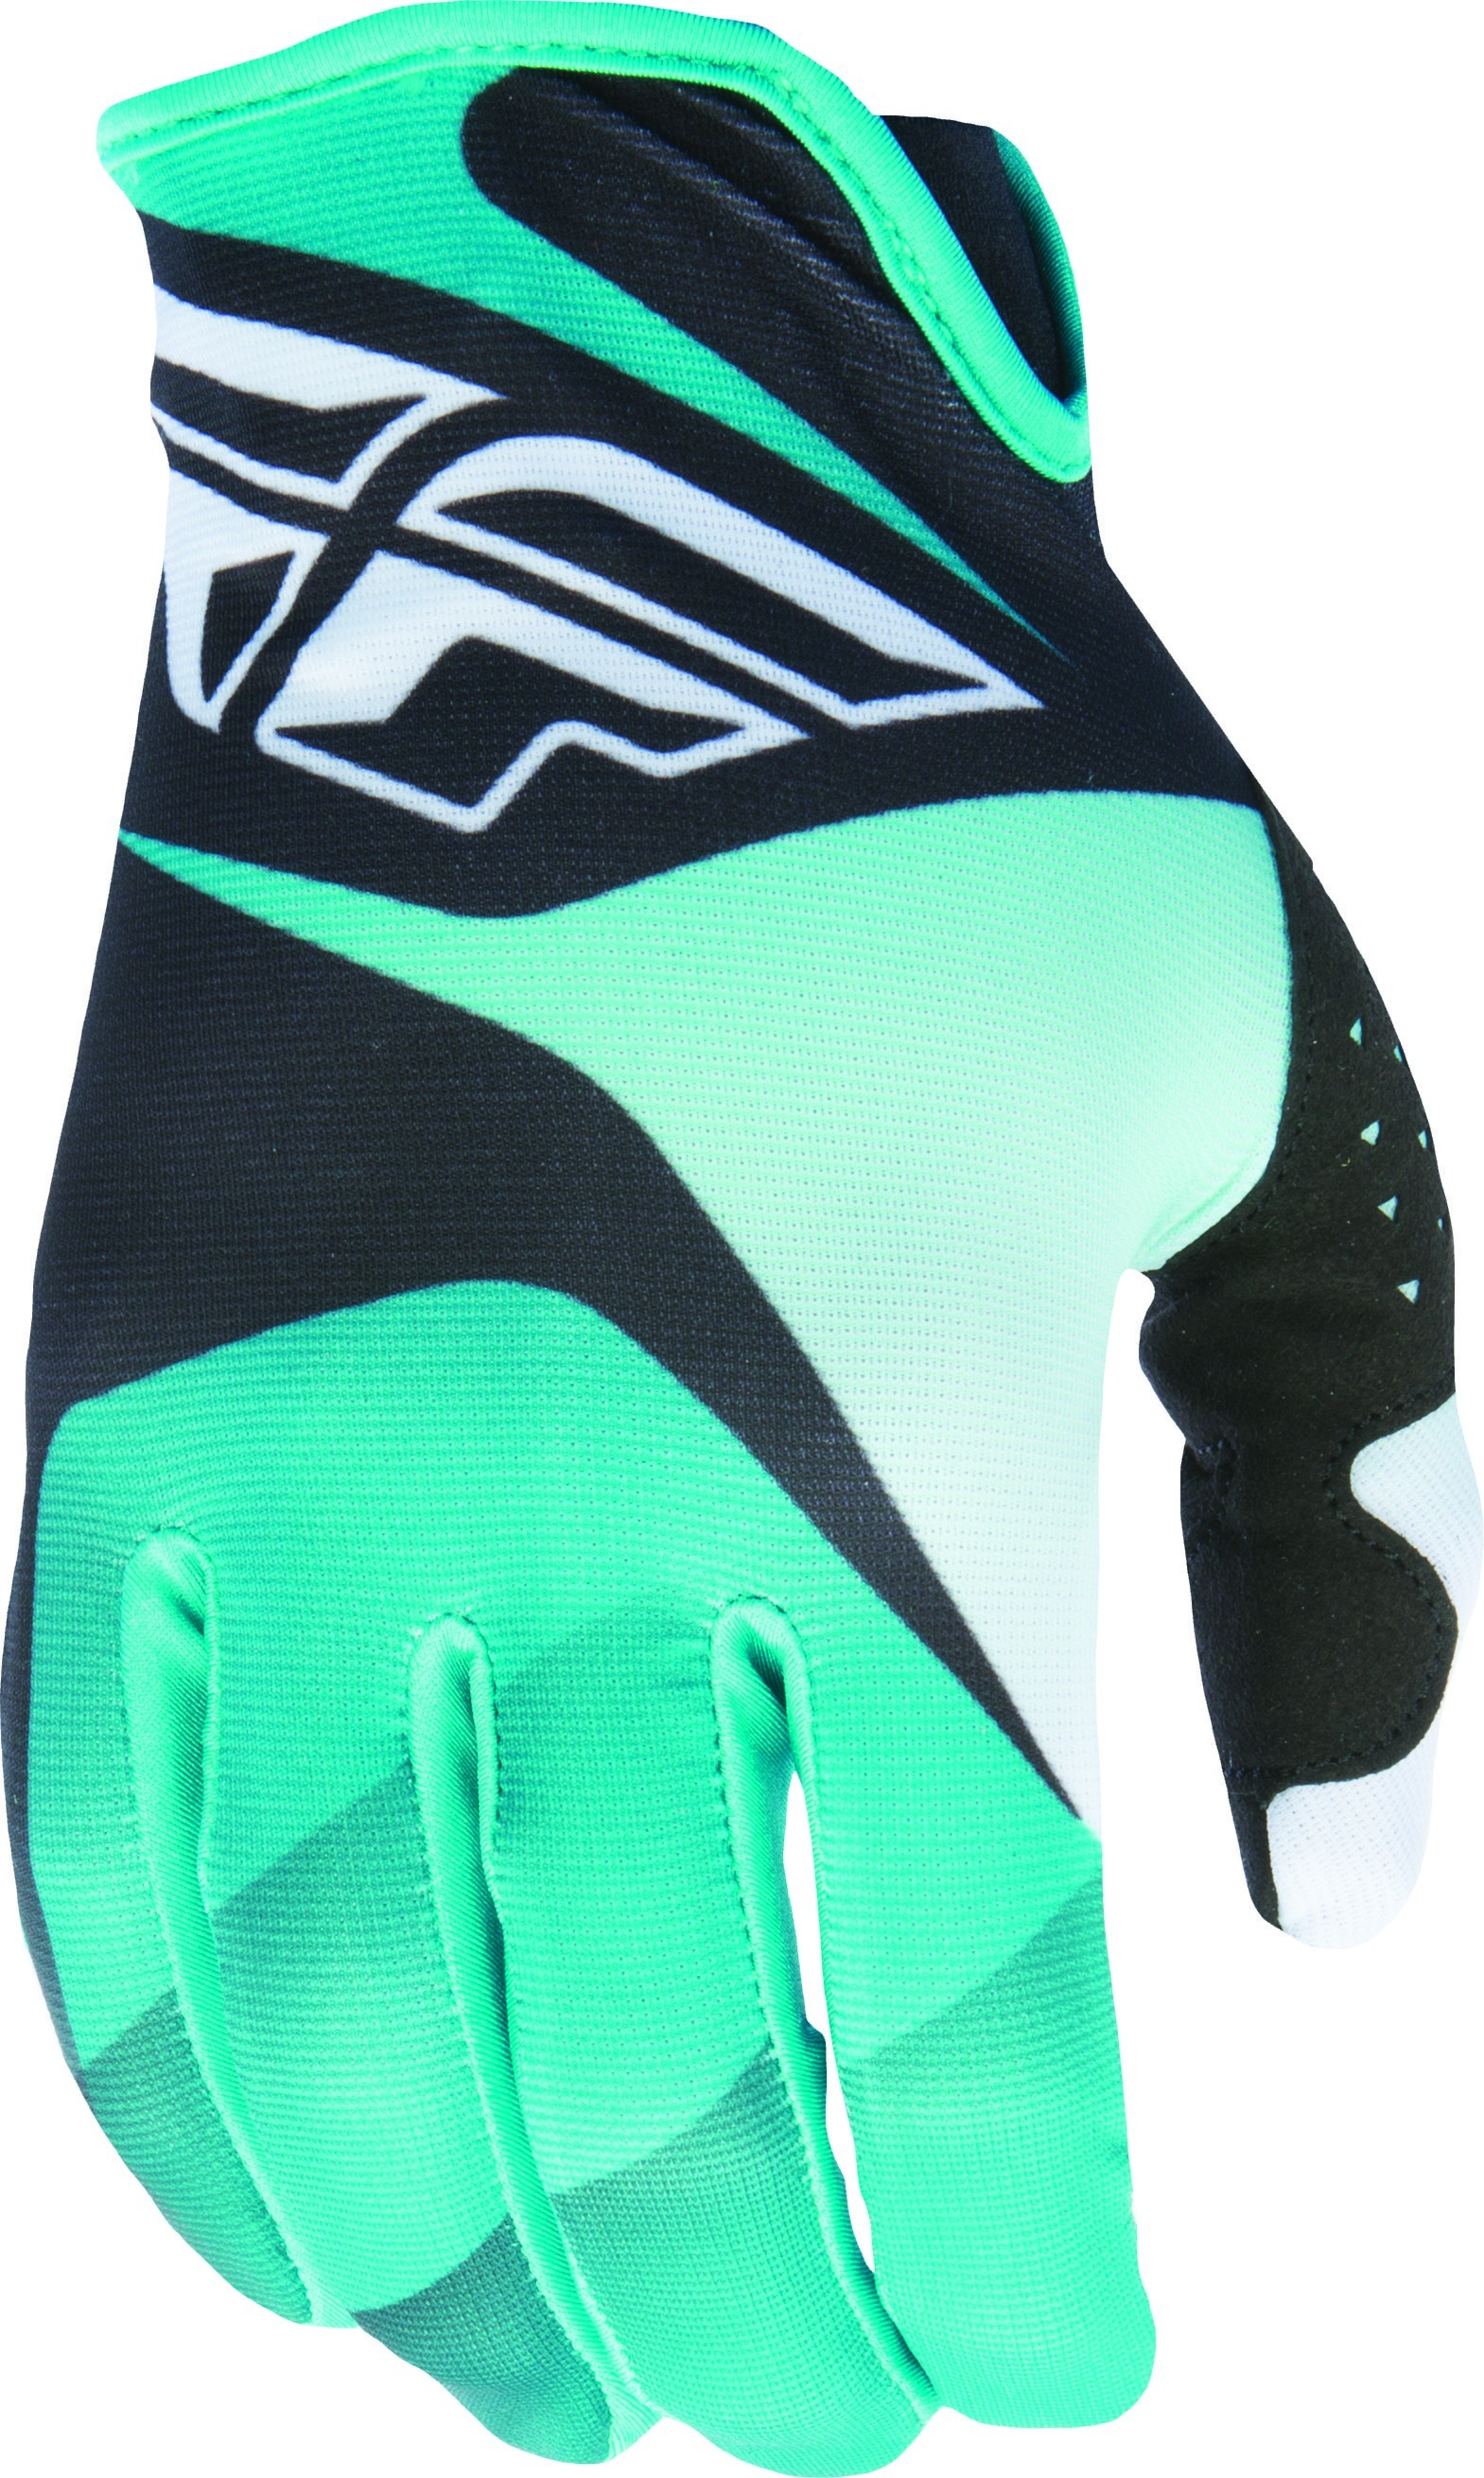 LITE GLOVE BLACK/WHITE/TEAL SZ 13 3X (370-01013)